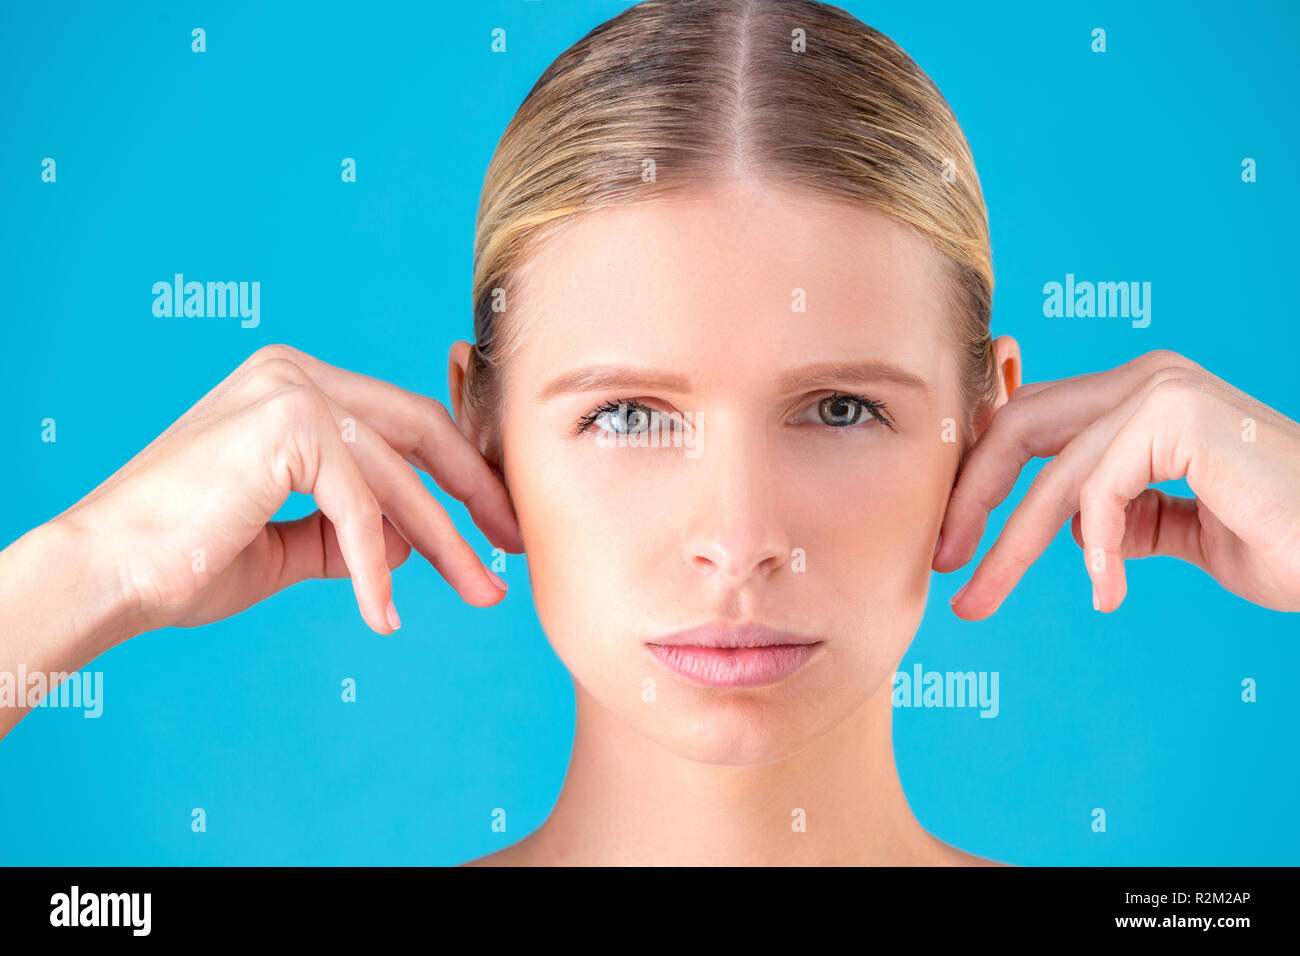 health, spa and beauty concept - clean face of beautiful young woman pointing to her ear - Stock Image